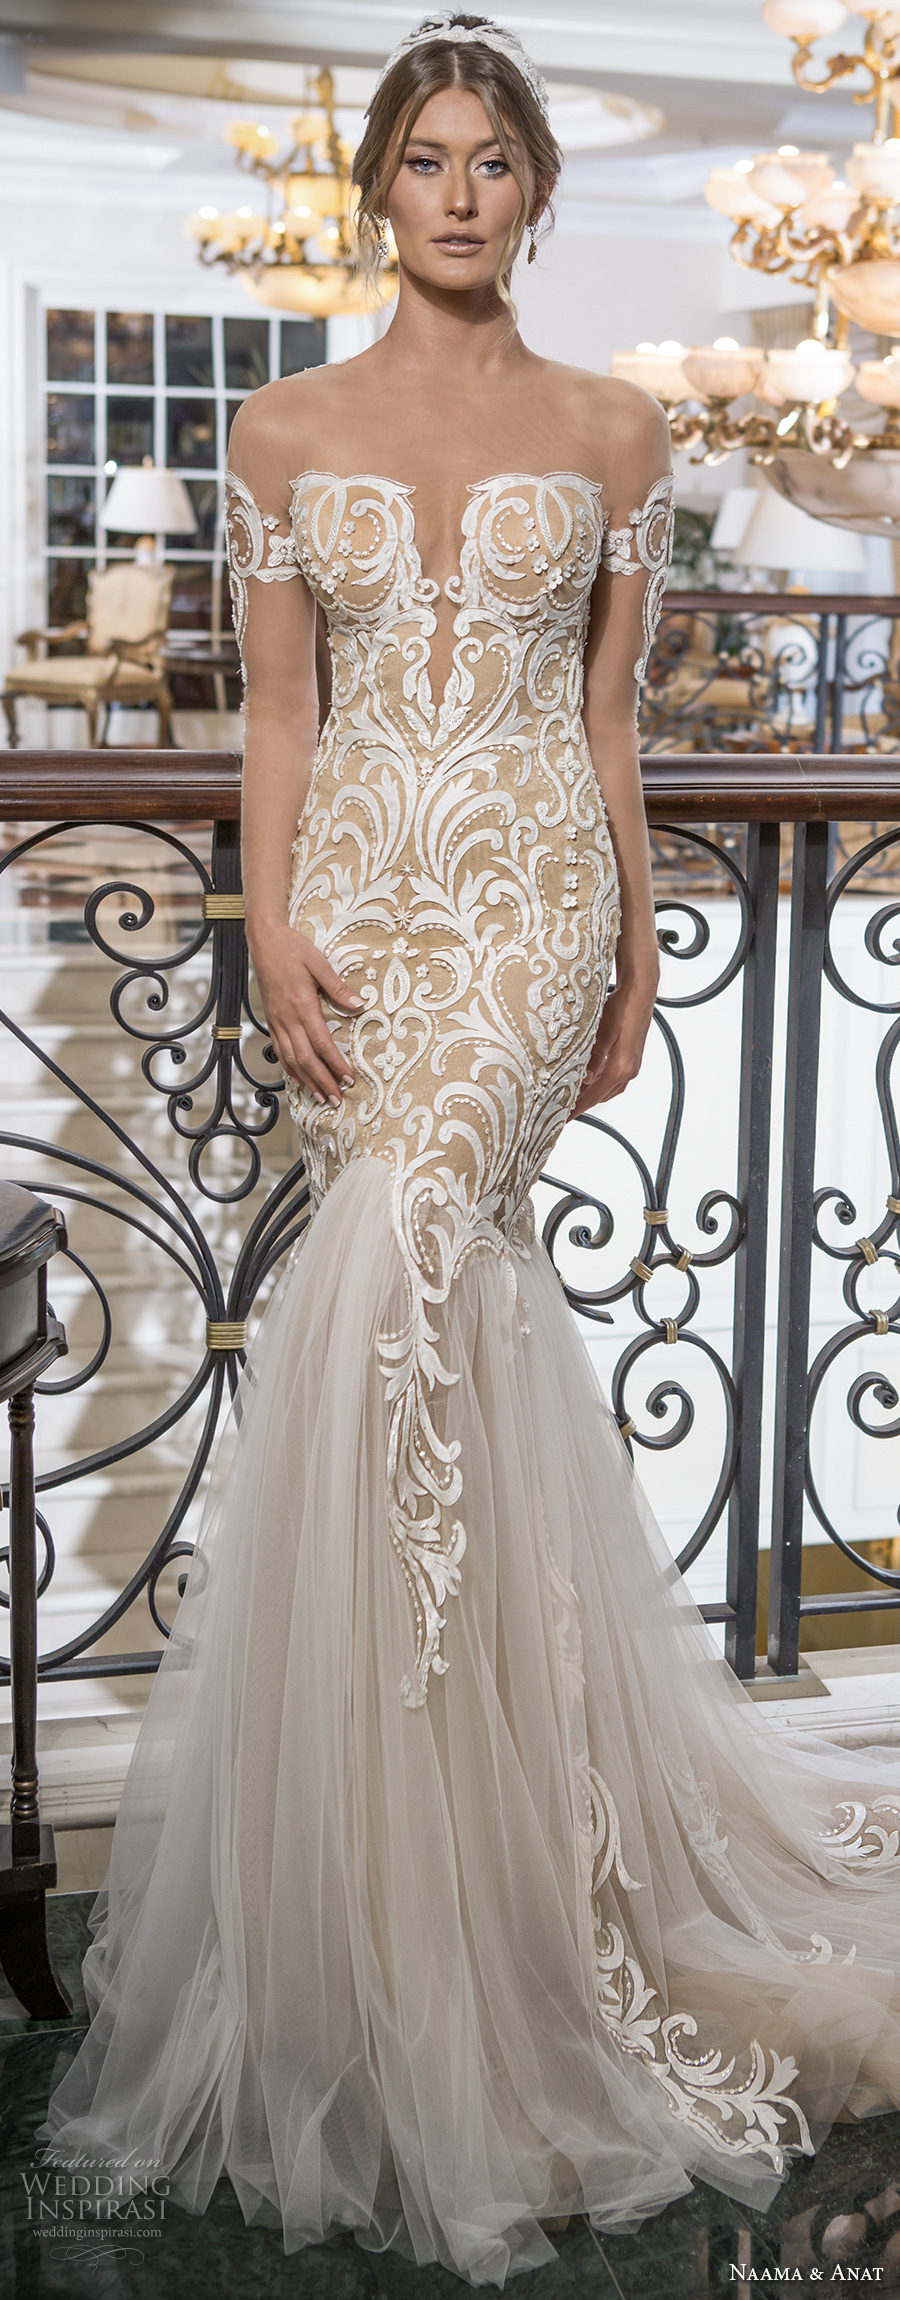 naama and anat 2018 bridal off the shoulder deep plunging sweetheart neckline heavily embroidered bodice tulle skirt gold glamorous mermaid wedding dress lace back chapel train (sensual) mv